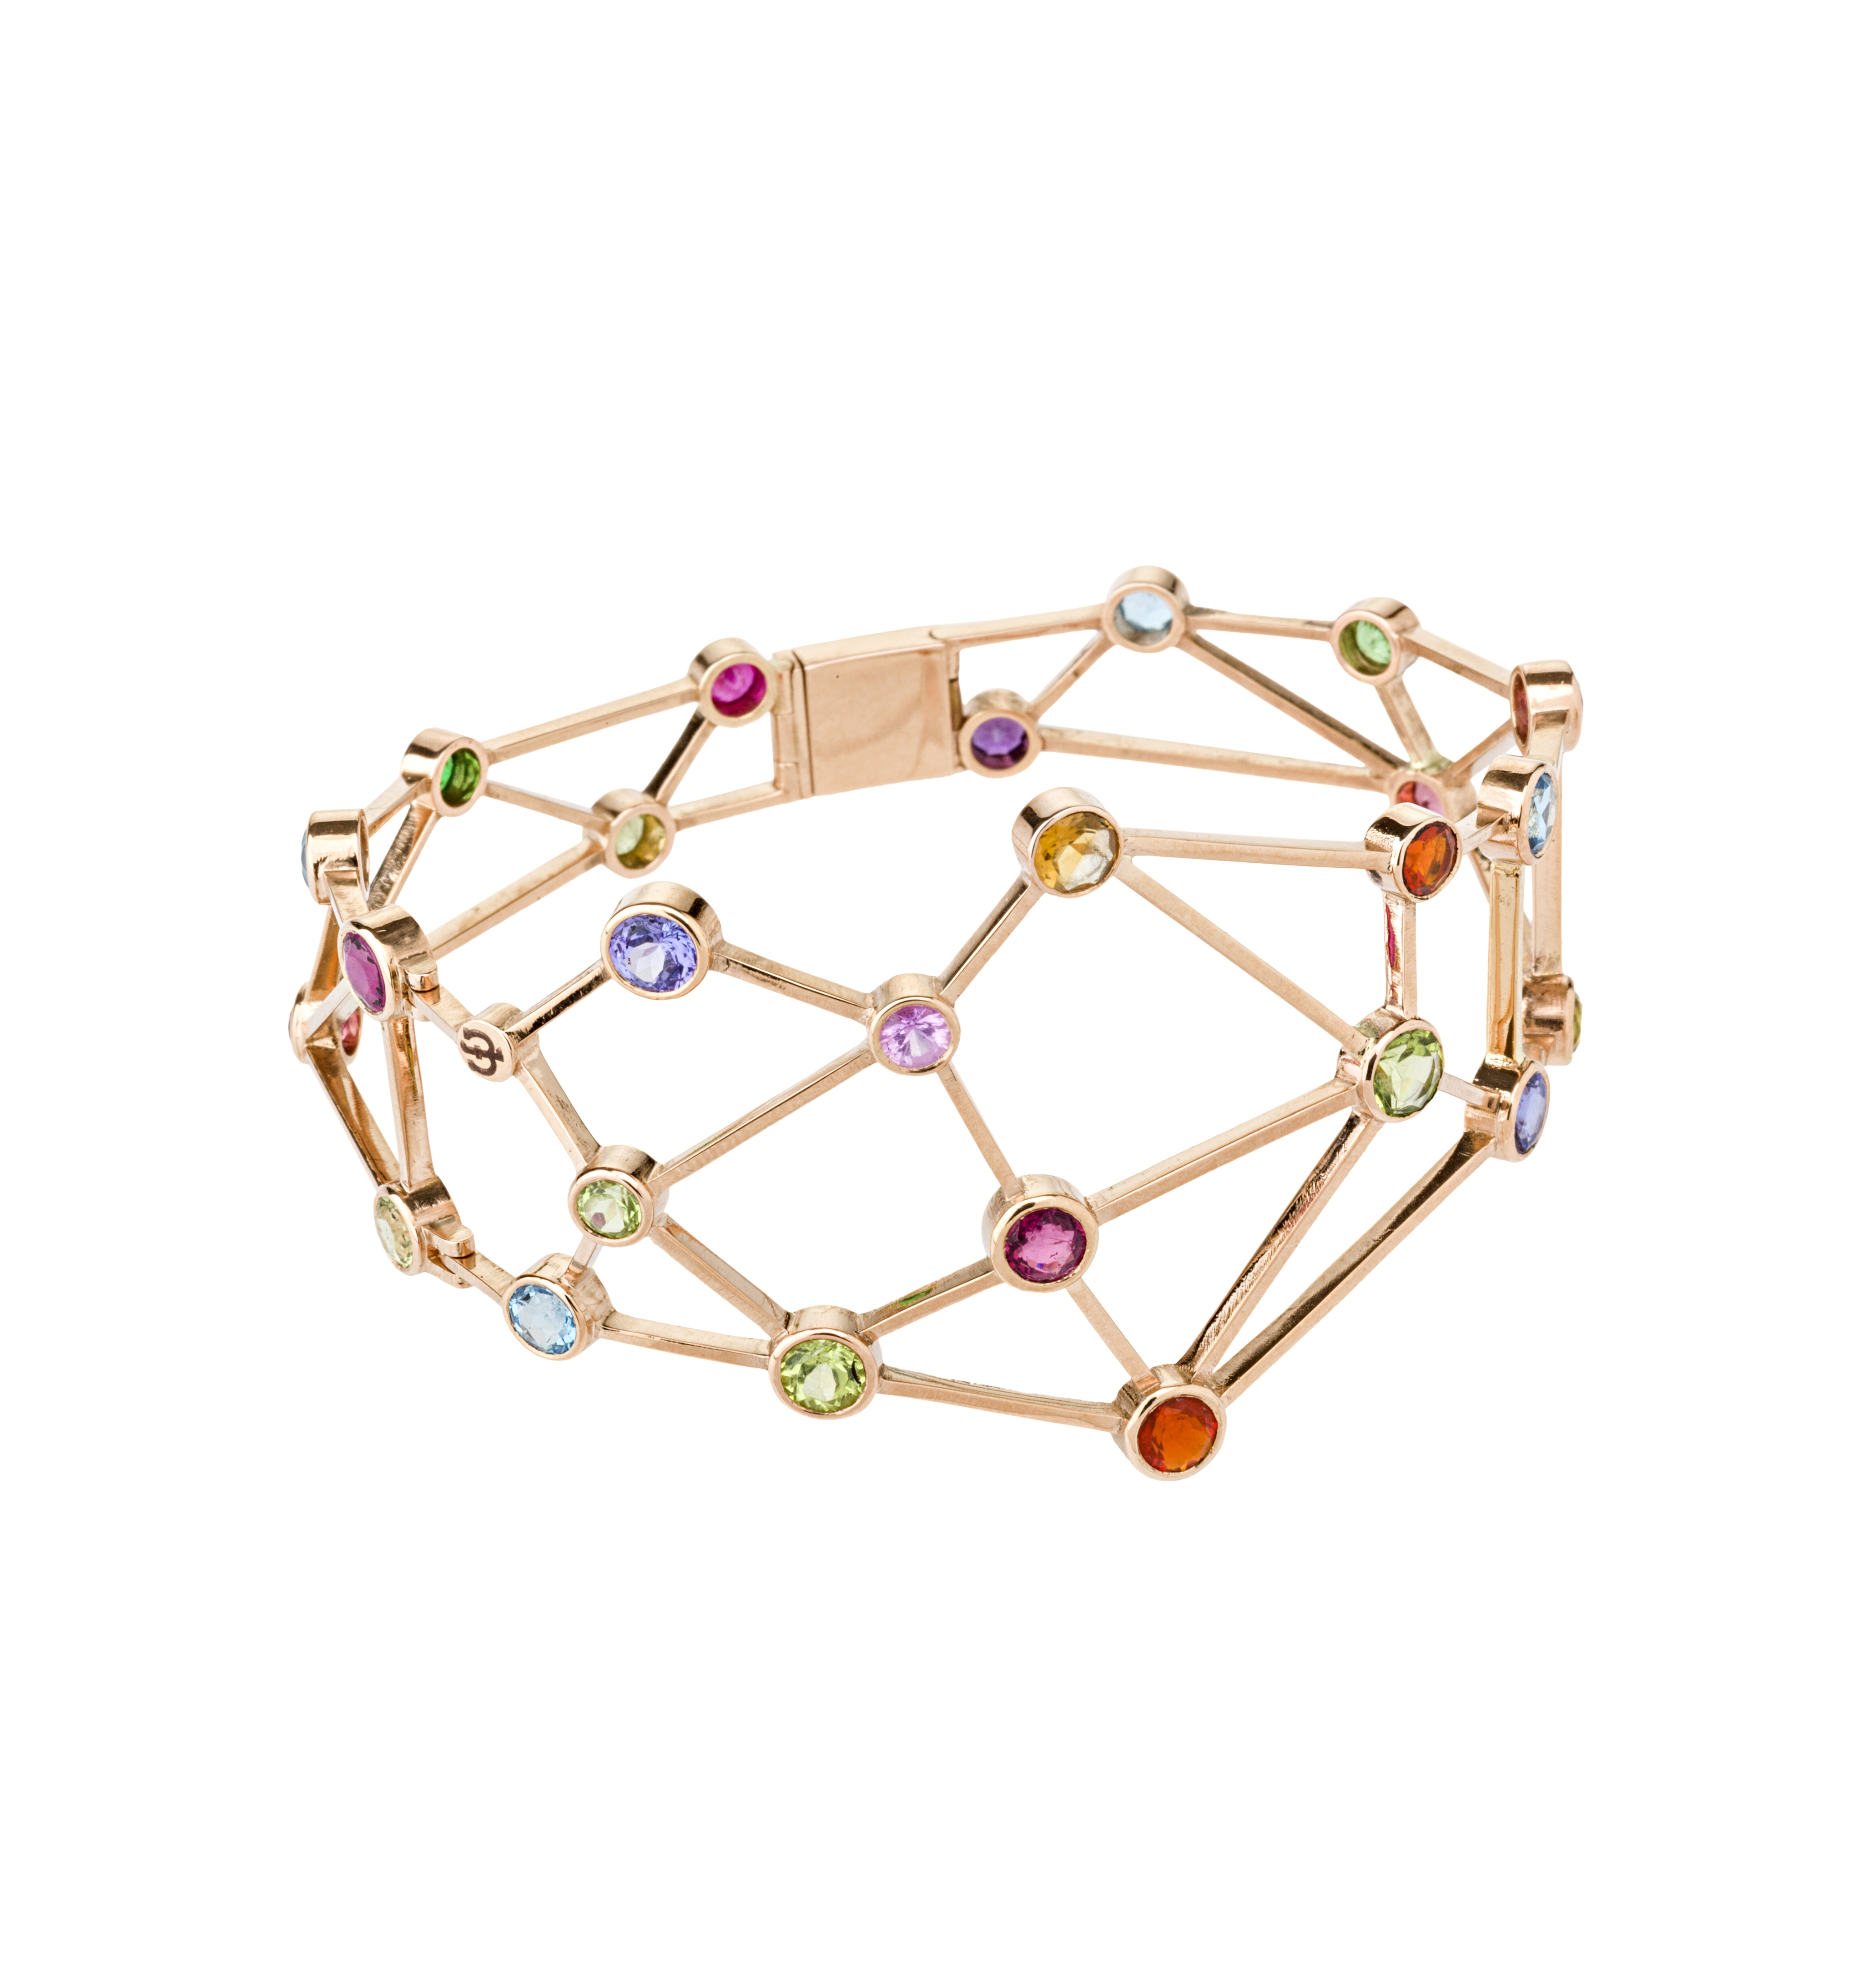 frutti giancarlo tutti gc jewelry jewellry bracelet style product index